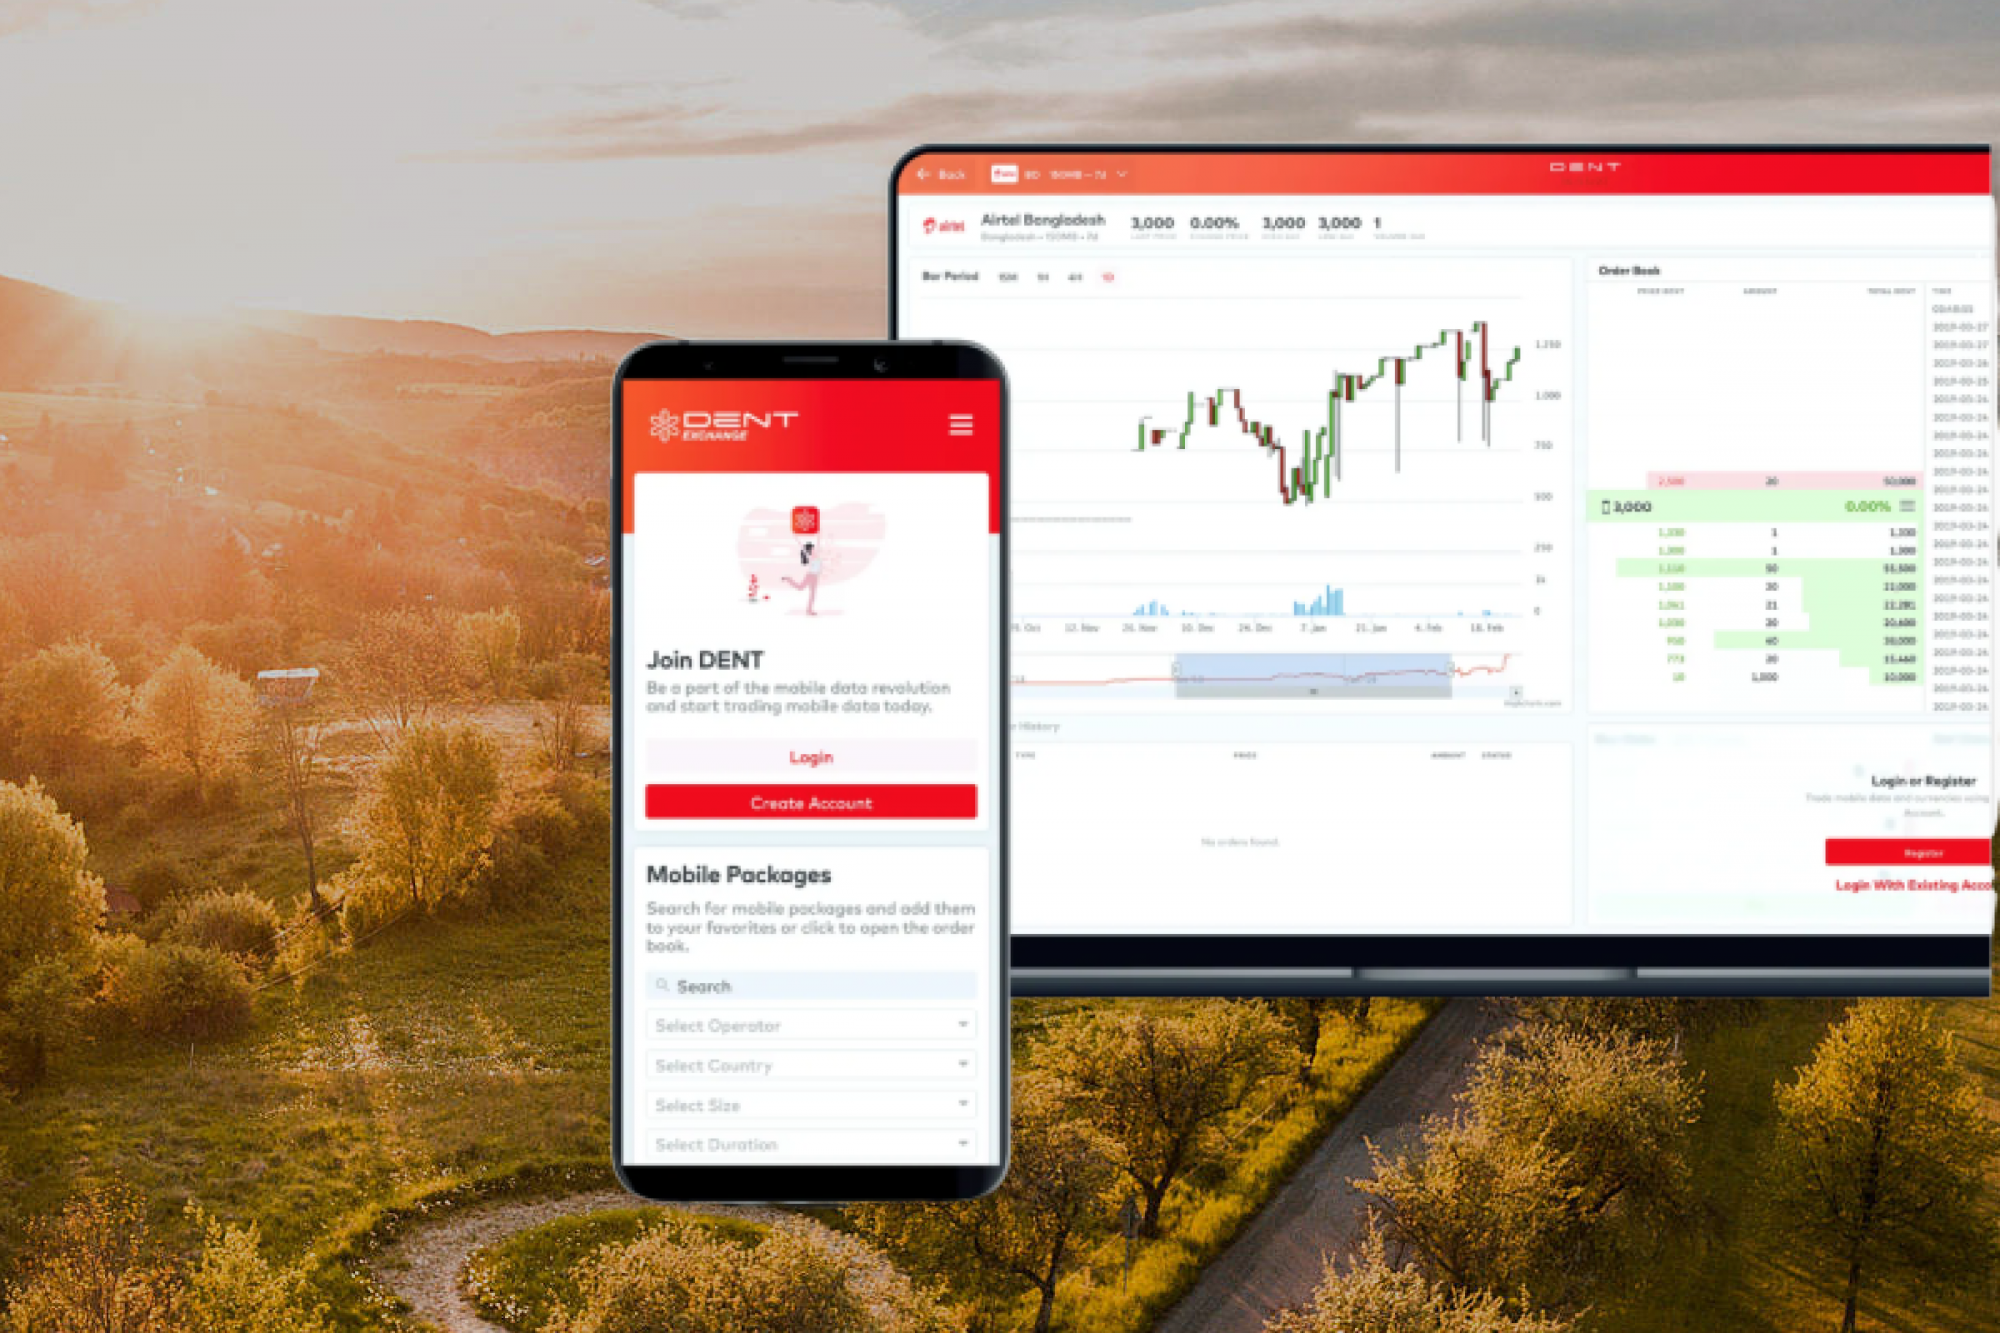 The picture shows the new feature, the Blockchain-based DENT World Telco, which enables worldwide voice calls directly from the DENT App.